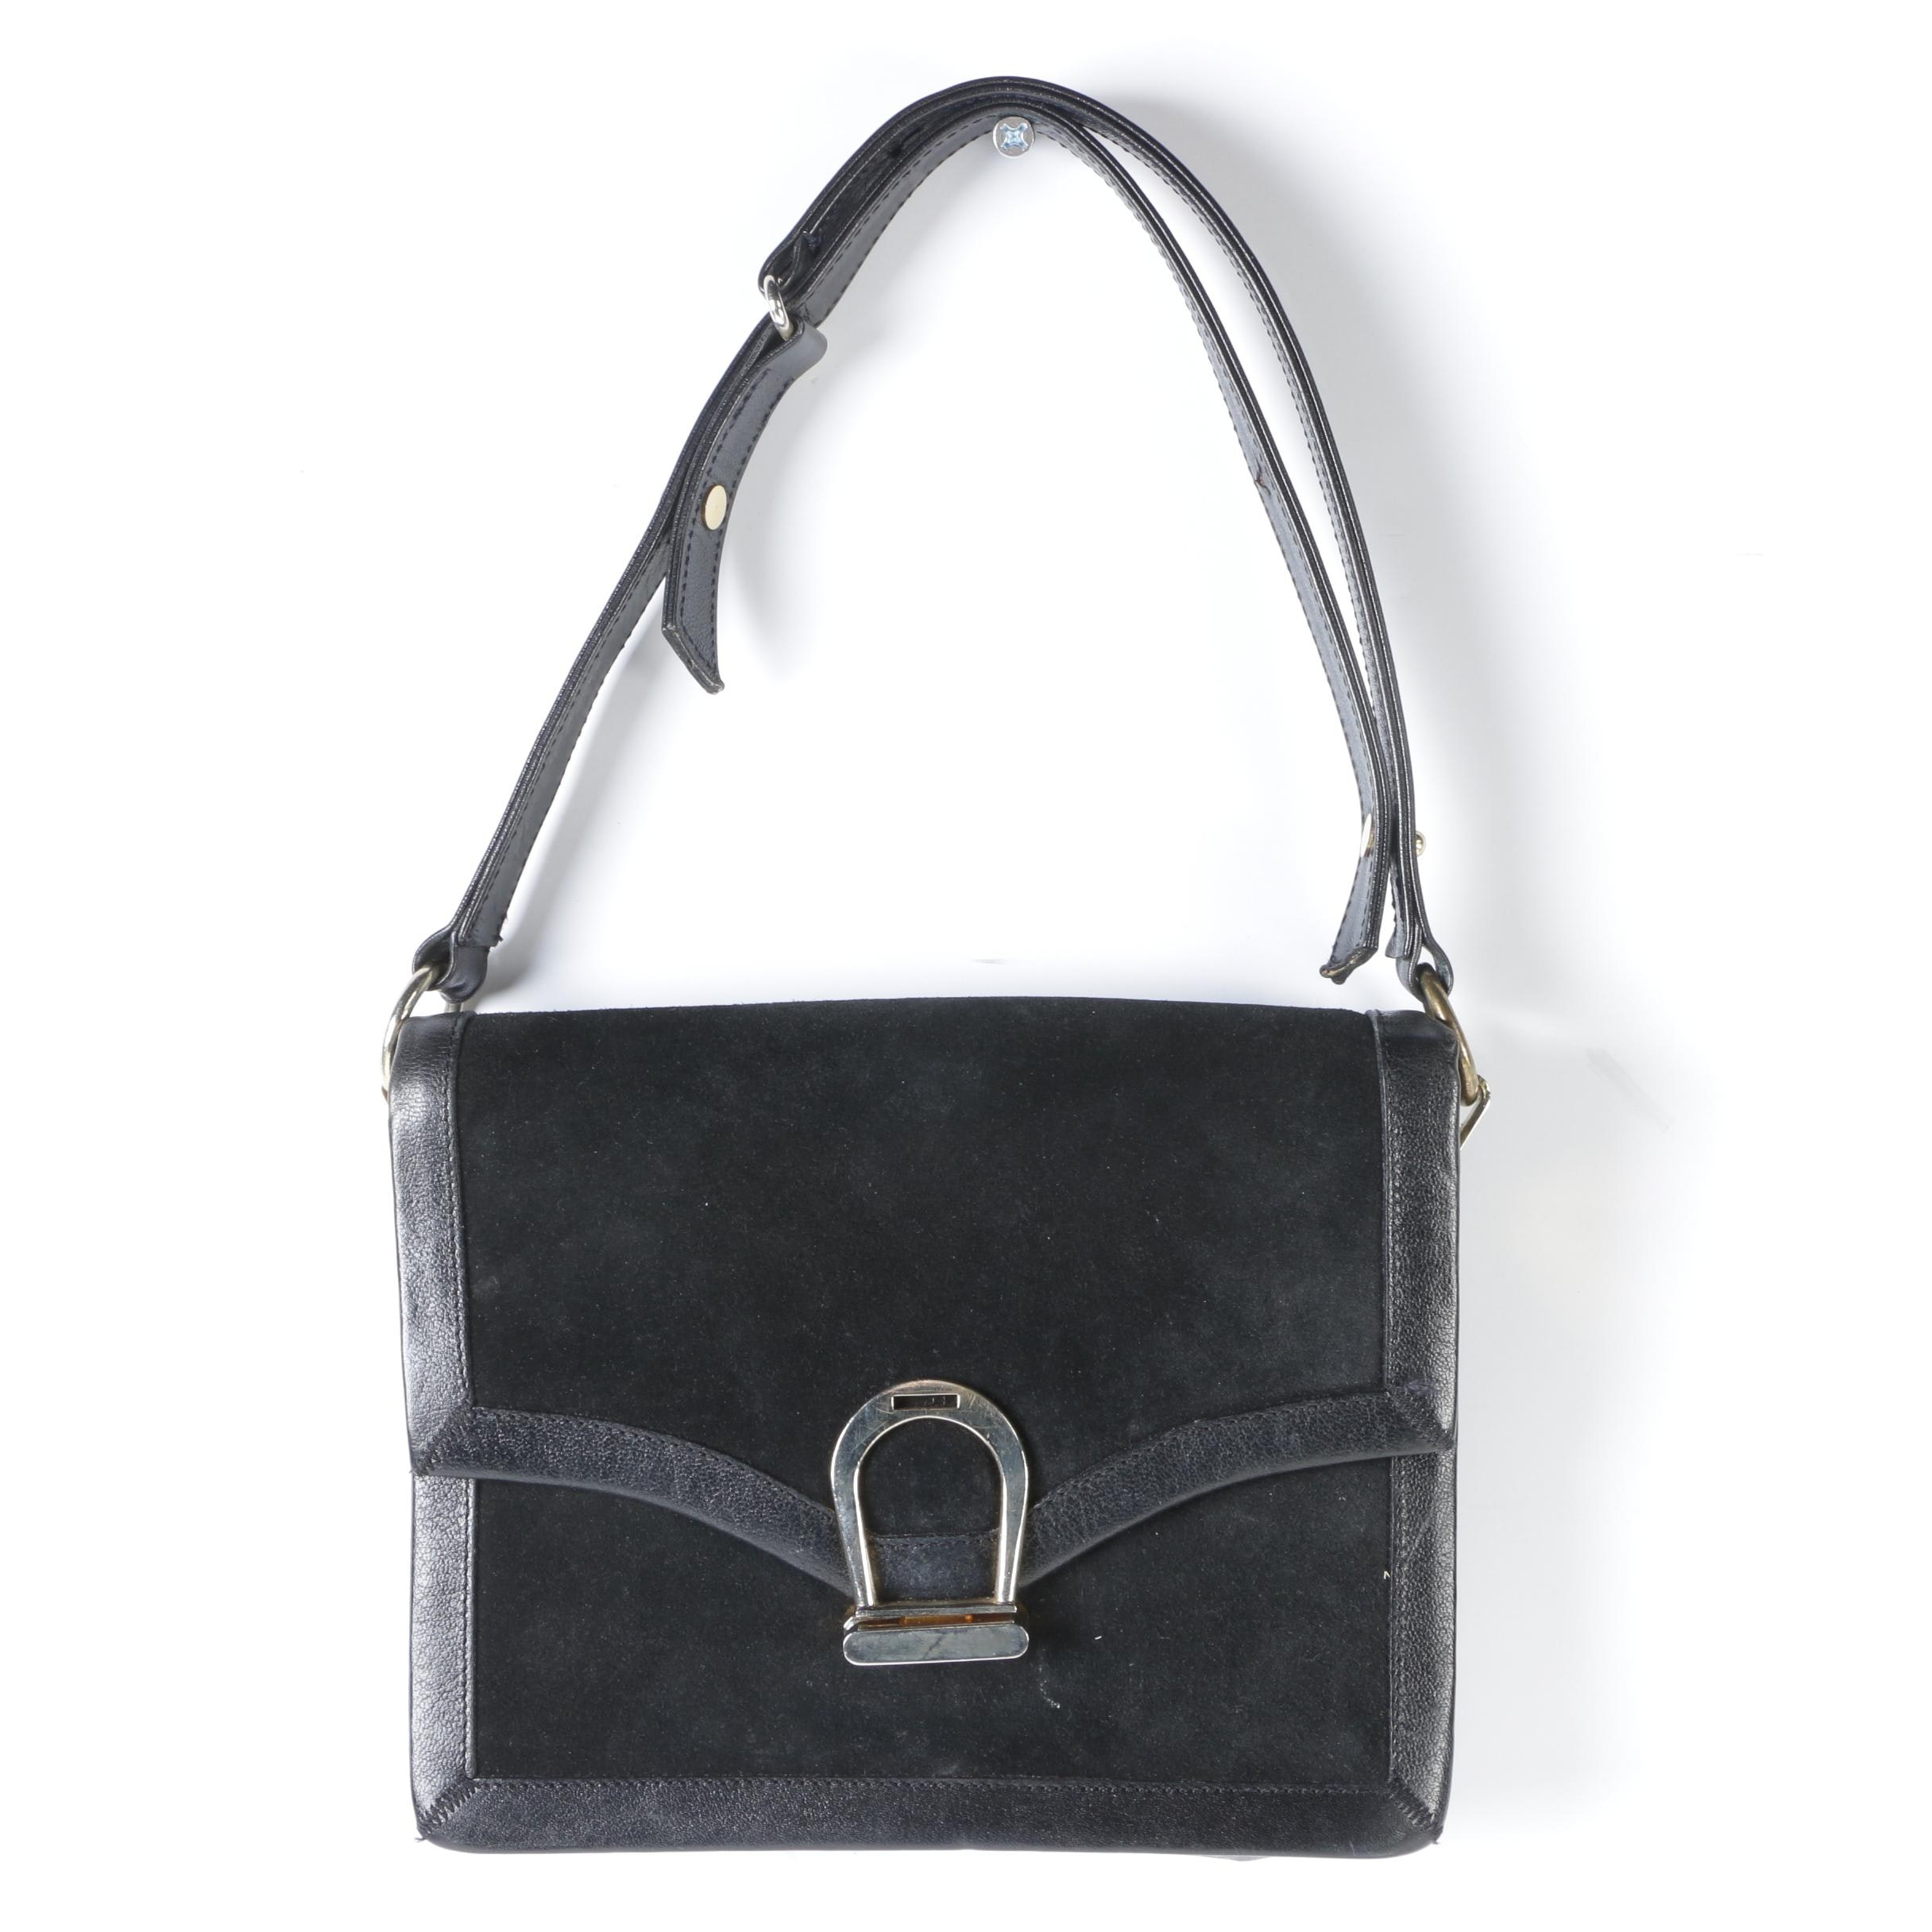 Saks Fifth Avenue Black Suede and Leather Shoulder Bag, Mid-20th Century